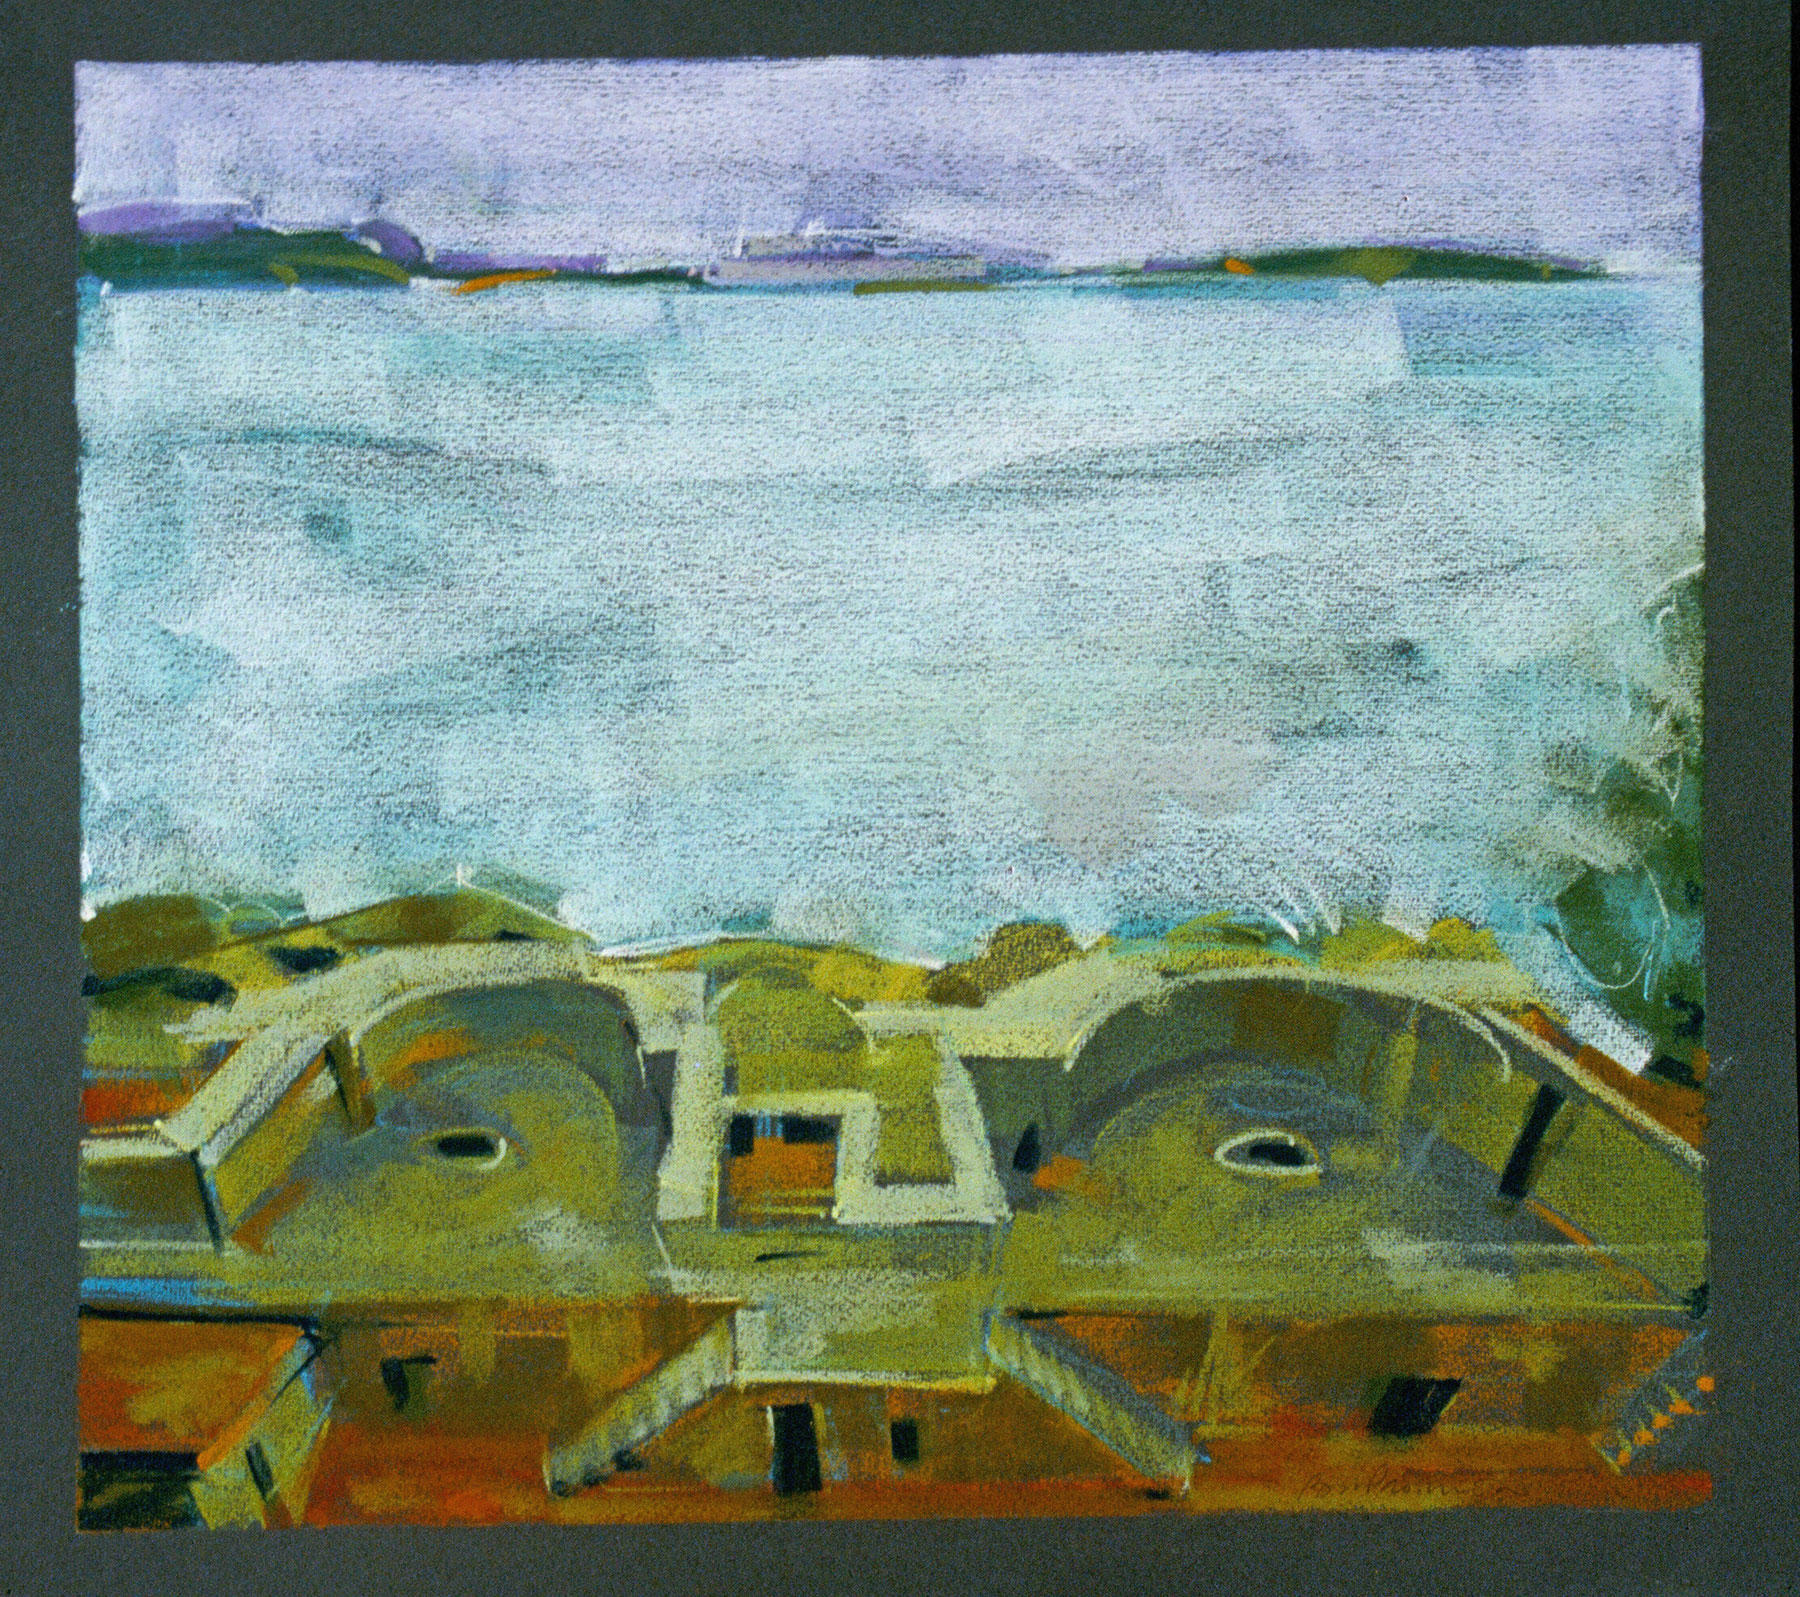 "Kirby Cove, Pastel on Paper (Fabriano), 1999, 17.5 x 19.125"", L99P3-67"